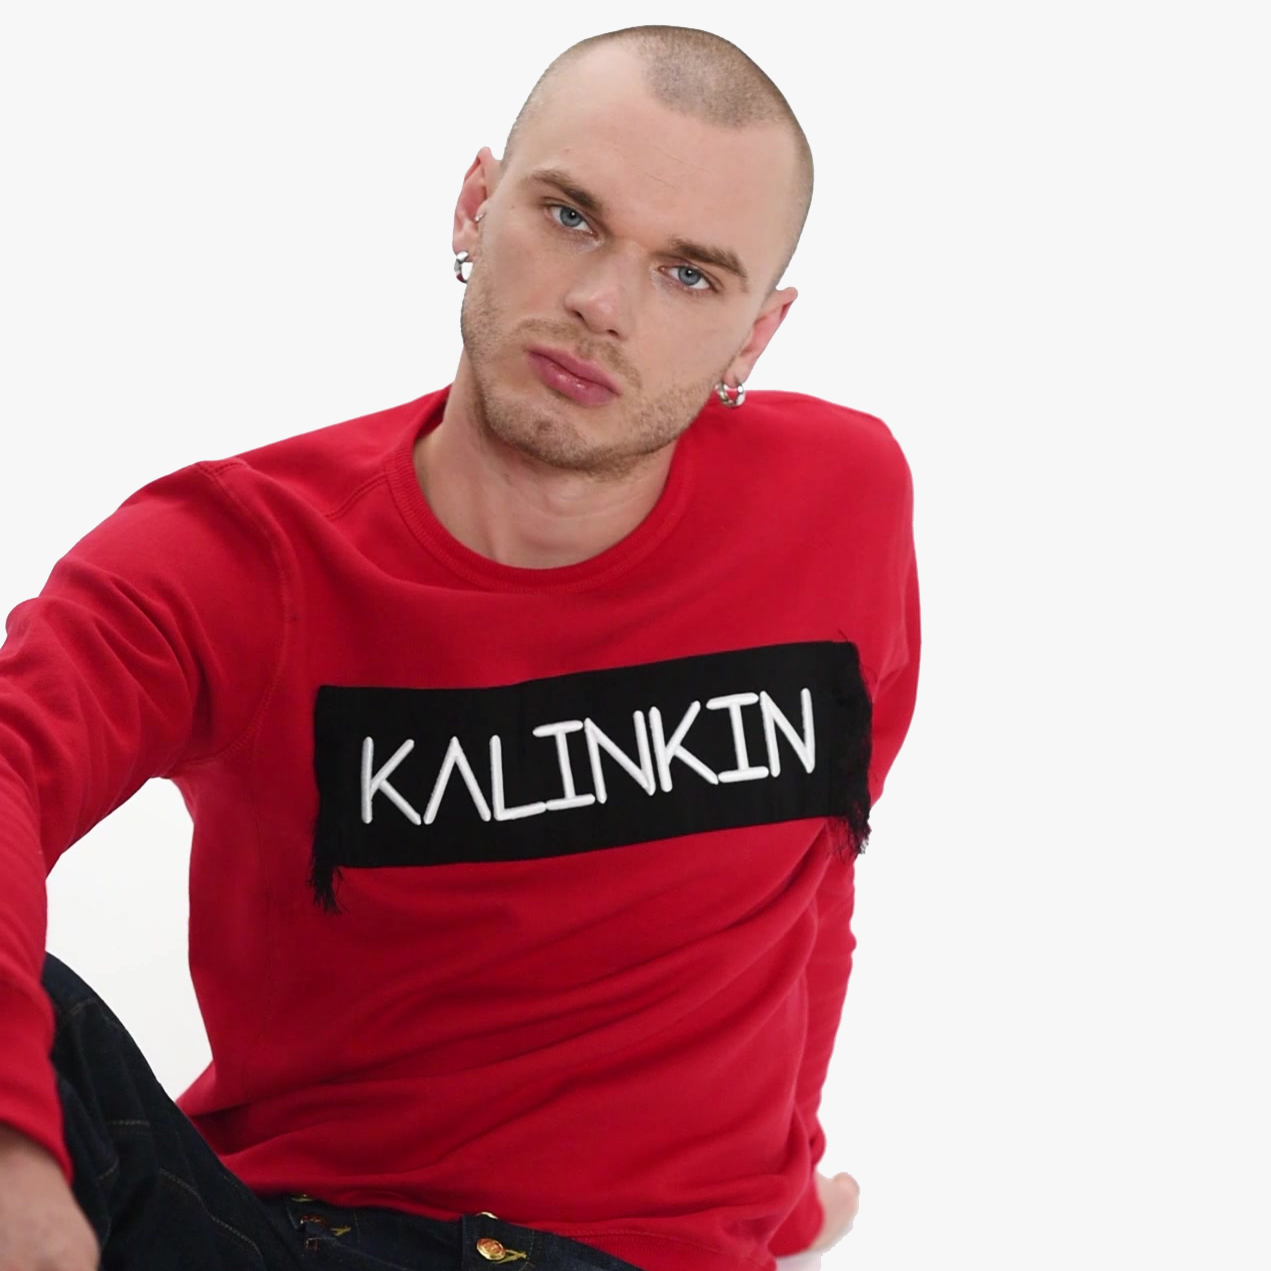 EMBROIDERED KALINKIN JUMPER - RED, UNISEX